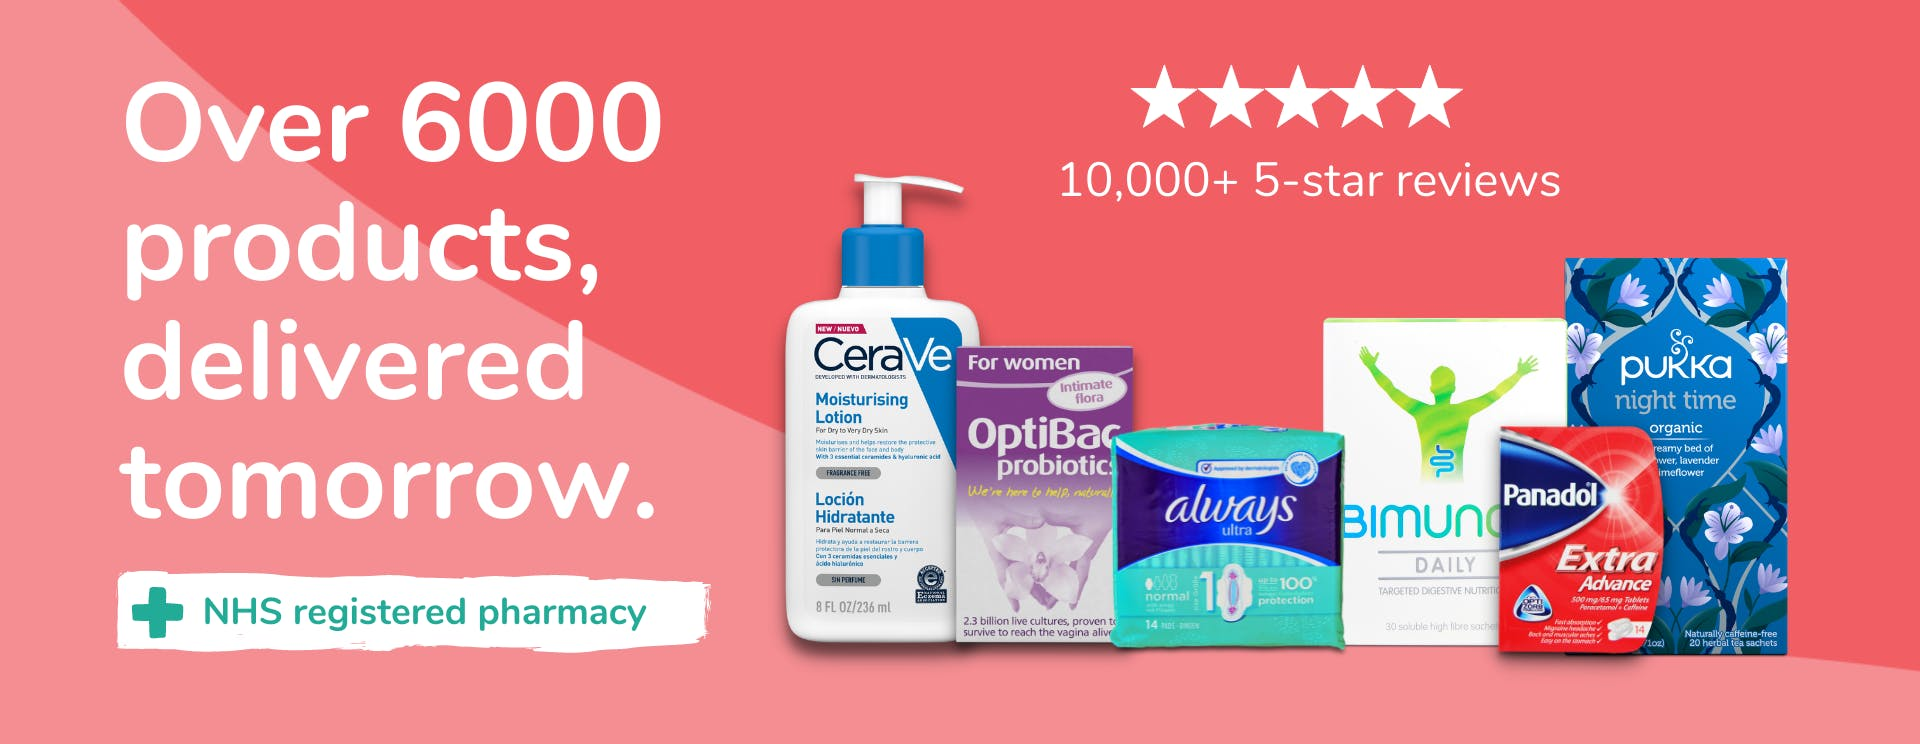 Over 6000 products, delivered tomorrow. 10,000+ 5-star reviews. NHS registered pharmacy.